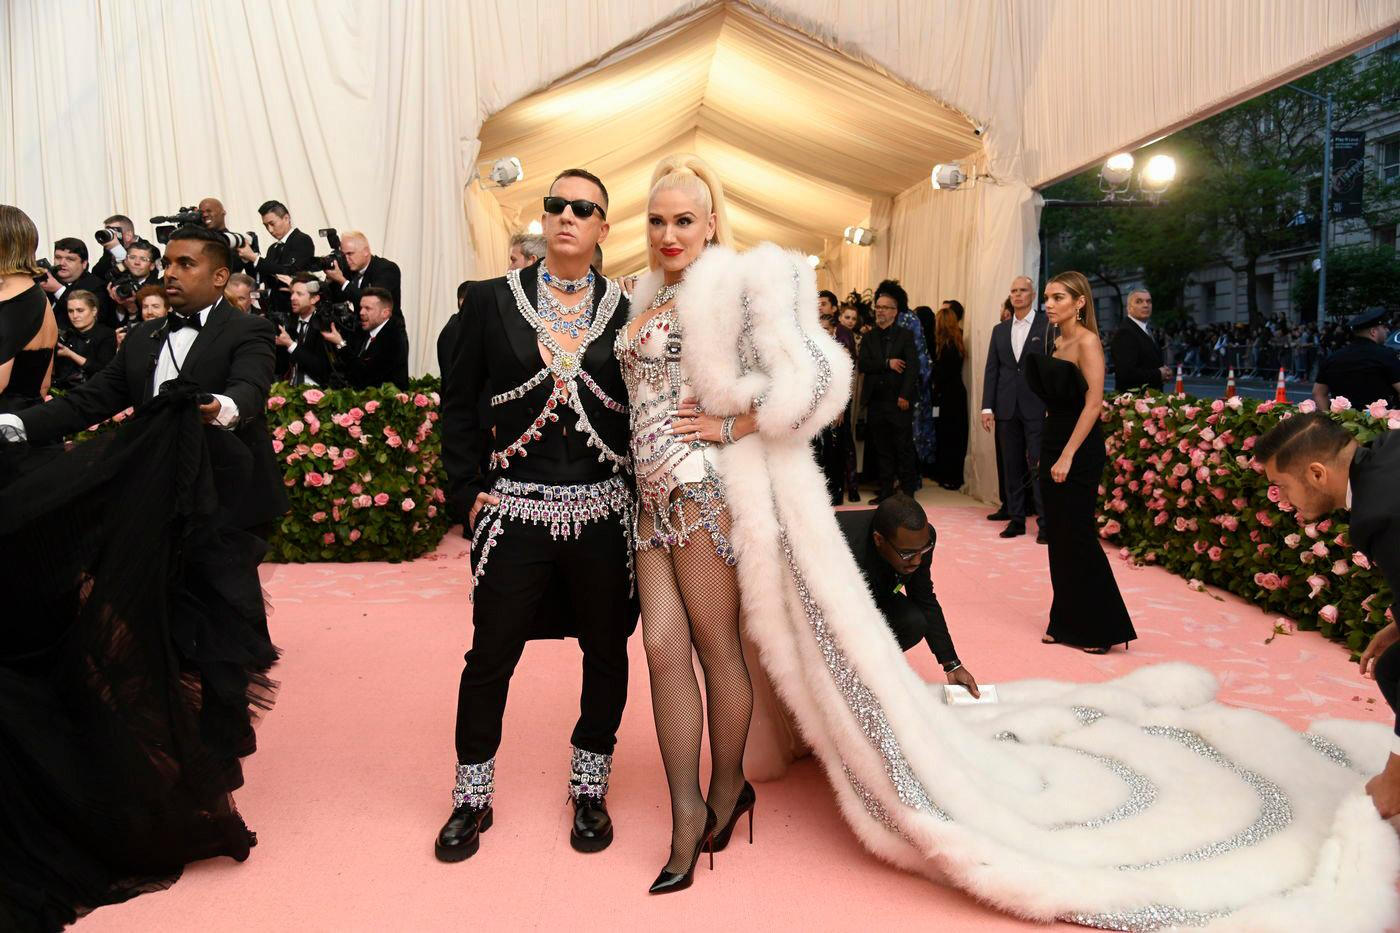 Jeremy Scott is camp. Always. I'm meh about Gwen's outfit but THAT COAT will live on in my dreams forevermore.